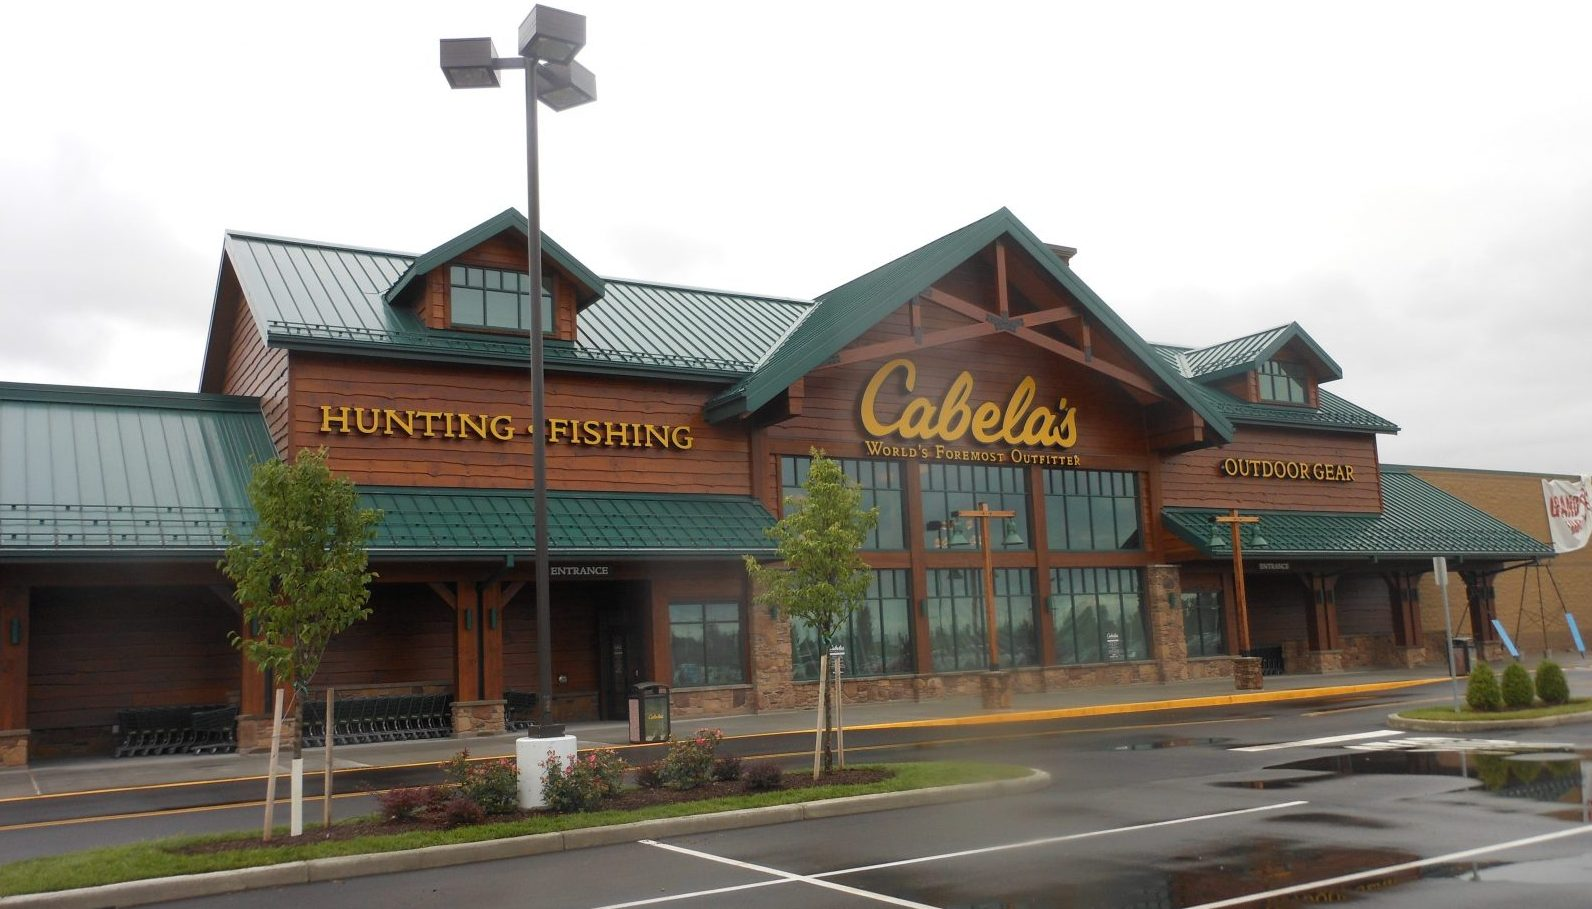 The Cabela's store in Cheektowaga, and all Cabela's stores, have been purchased by Bass Pro.